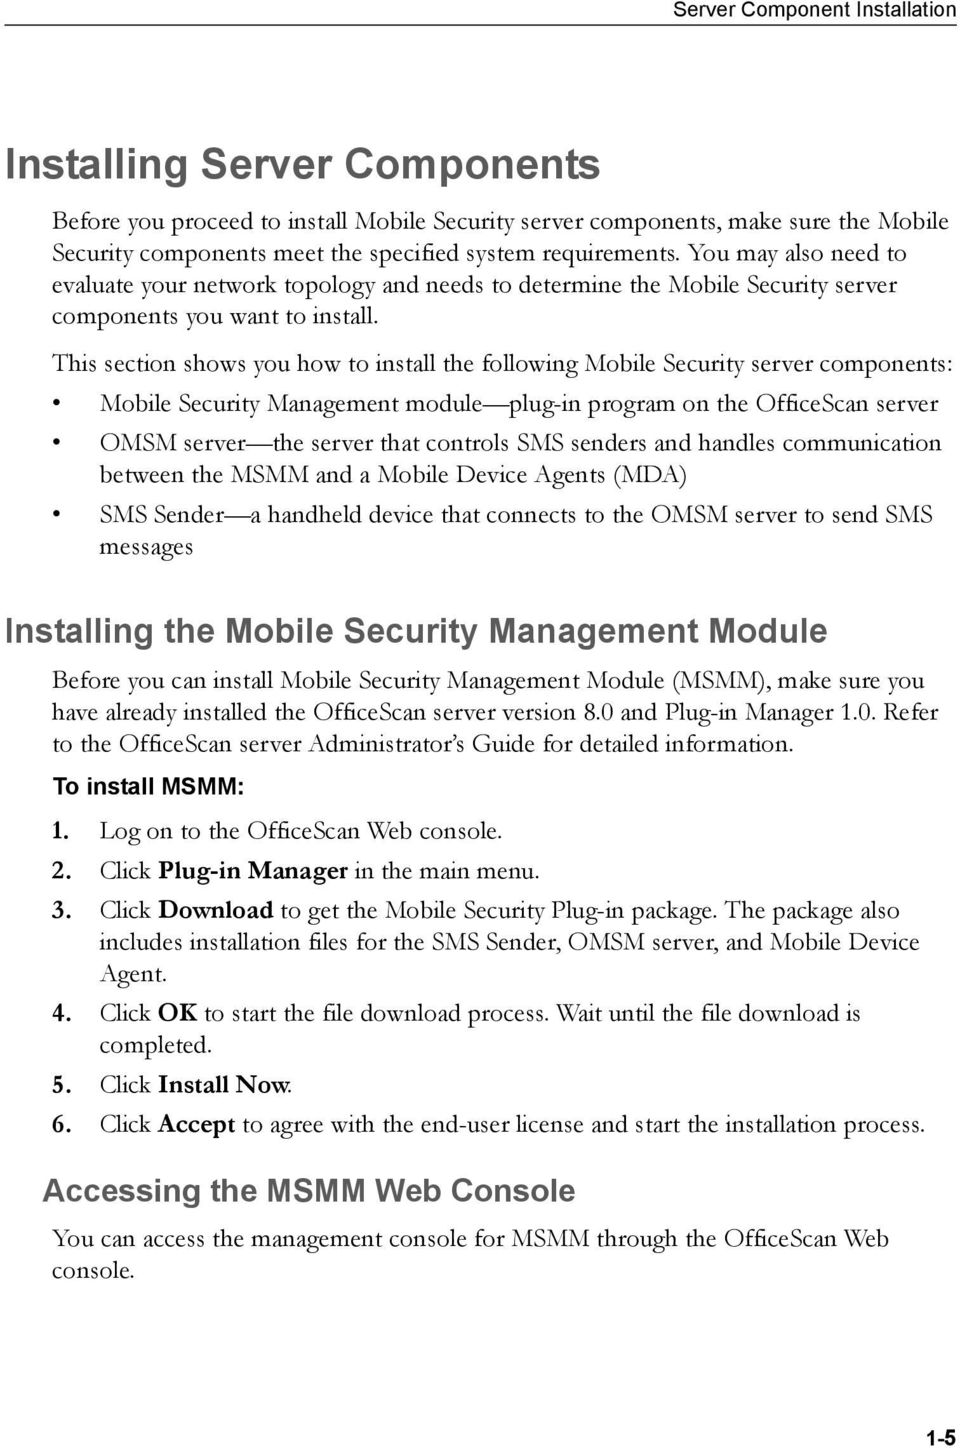 This section shows you how to install the following Mobile Security server components: Mobile Security Management module plug-in program on the OfficeScan server OMSM server the server that controls